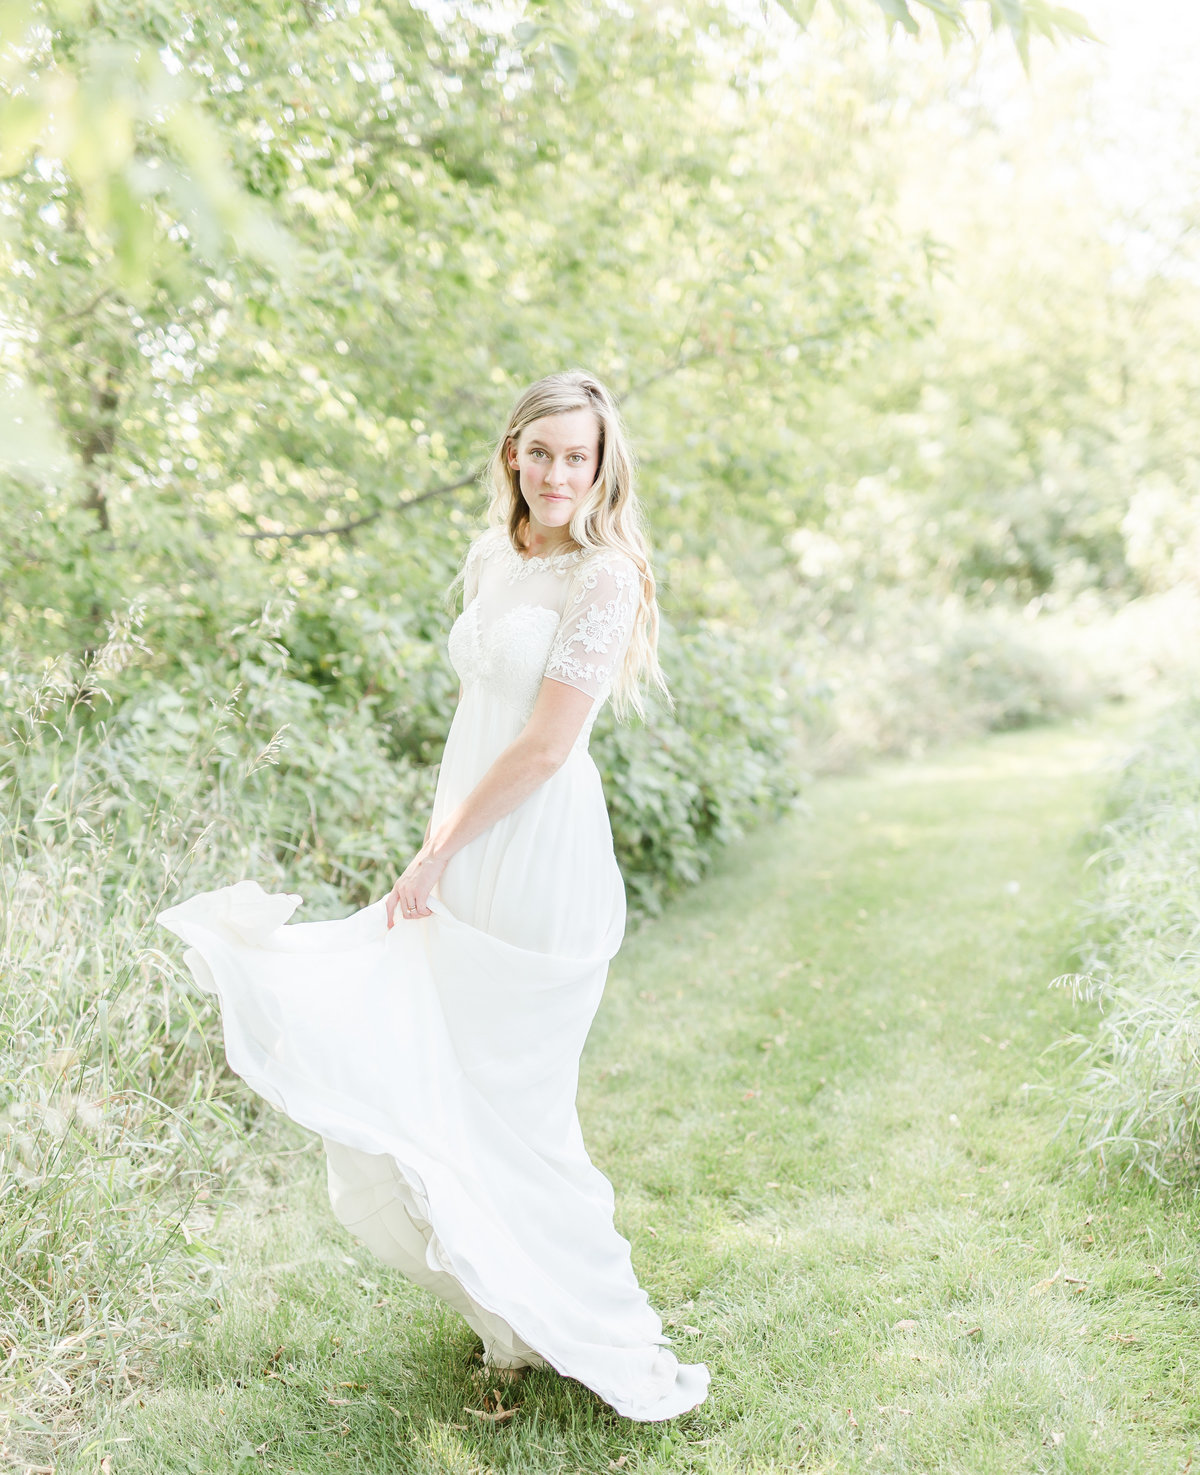 Kailey - Styled Shoot - New Edits-18